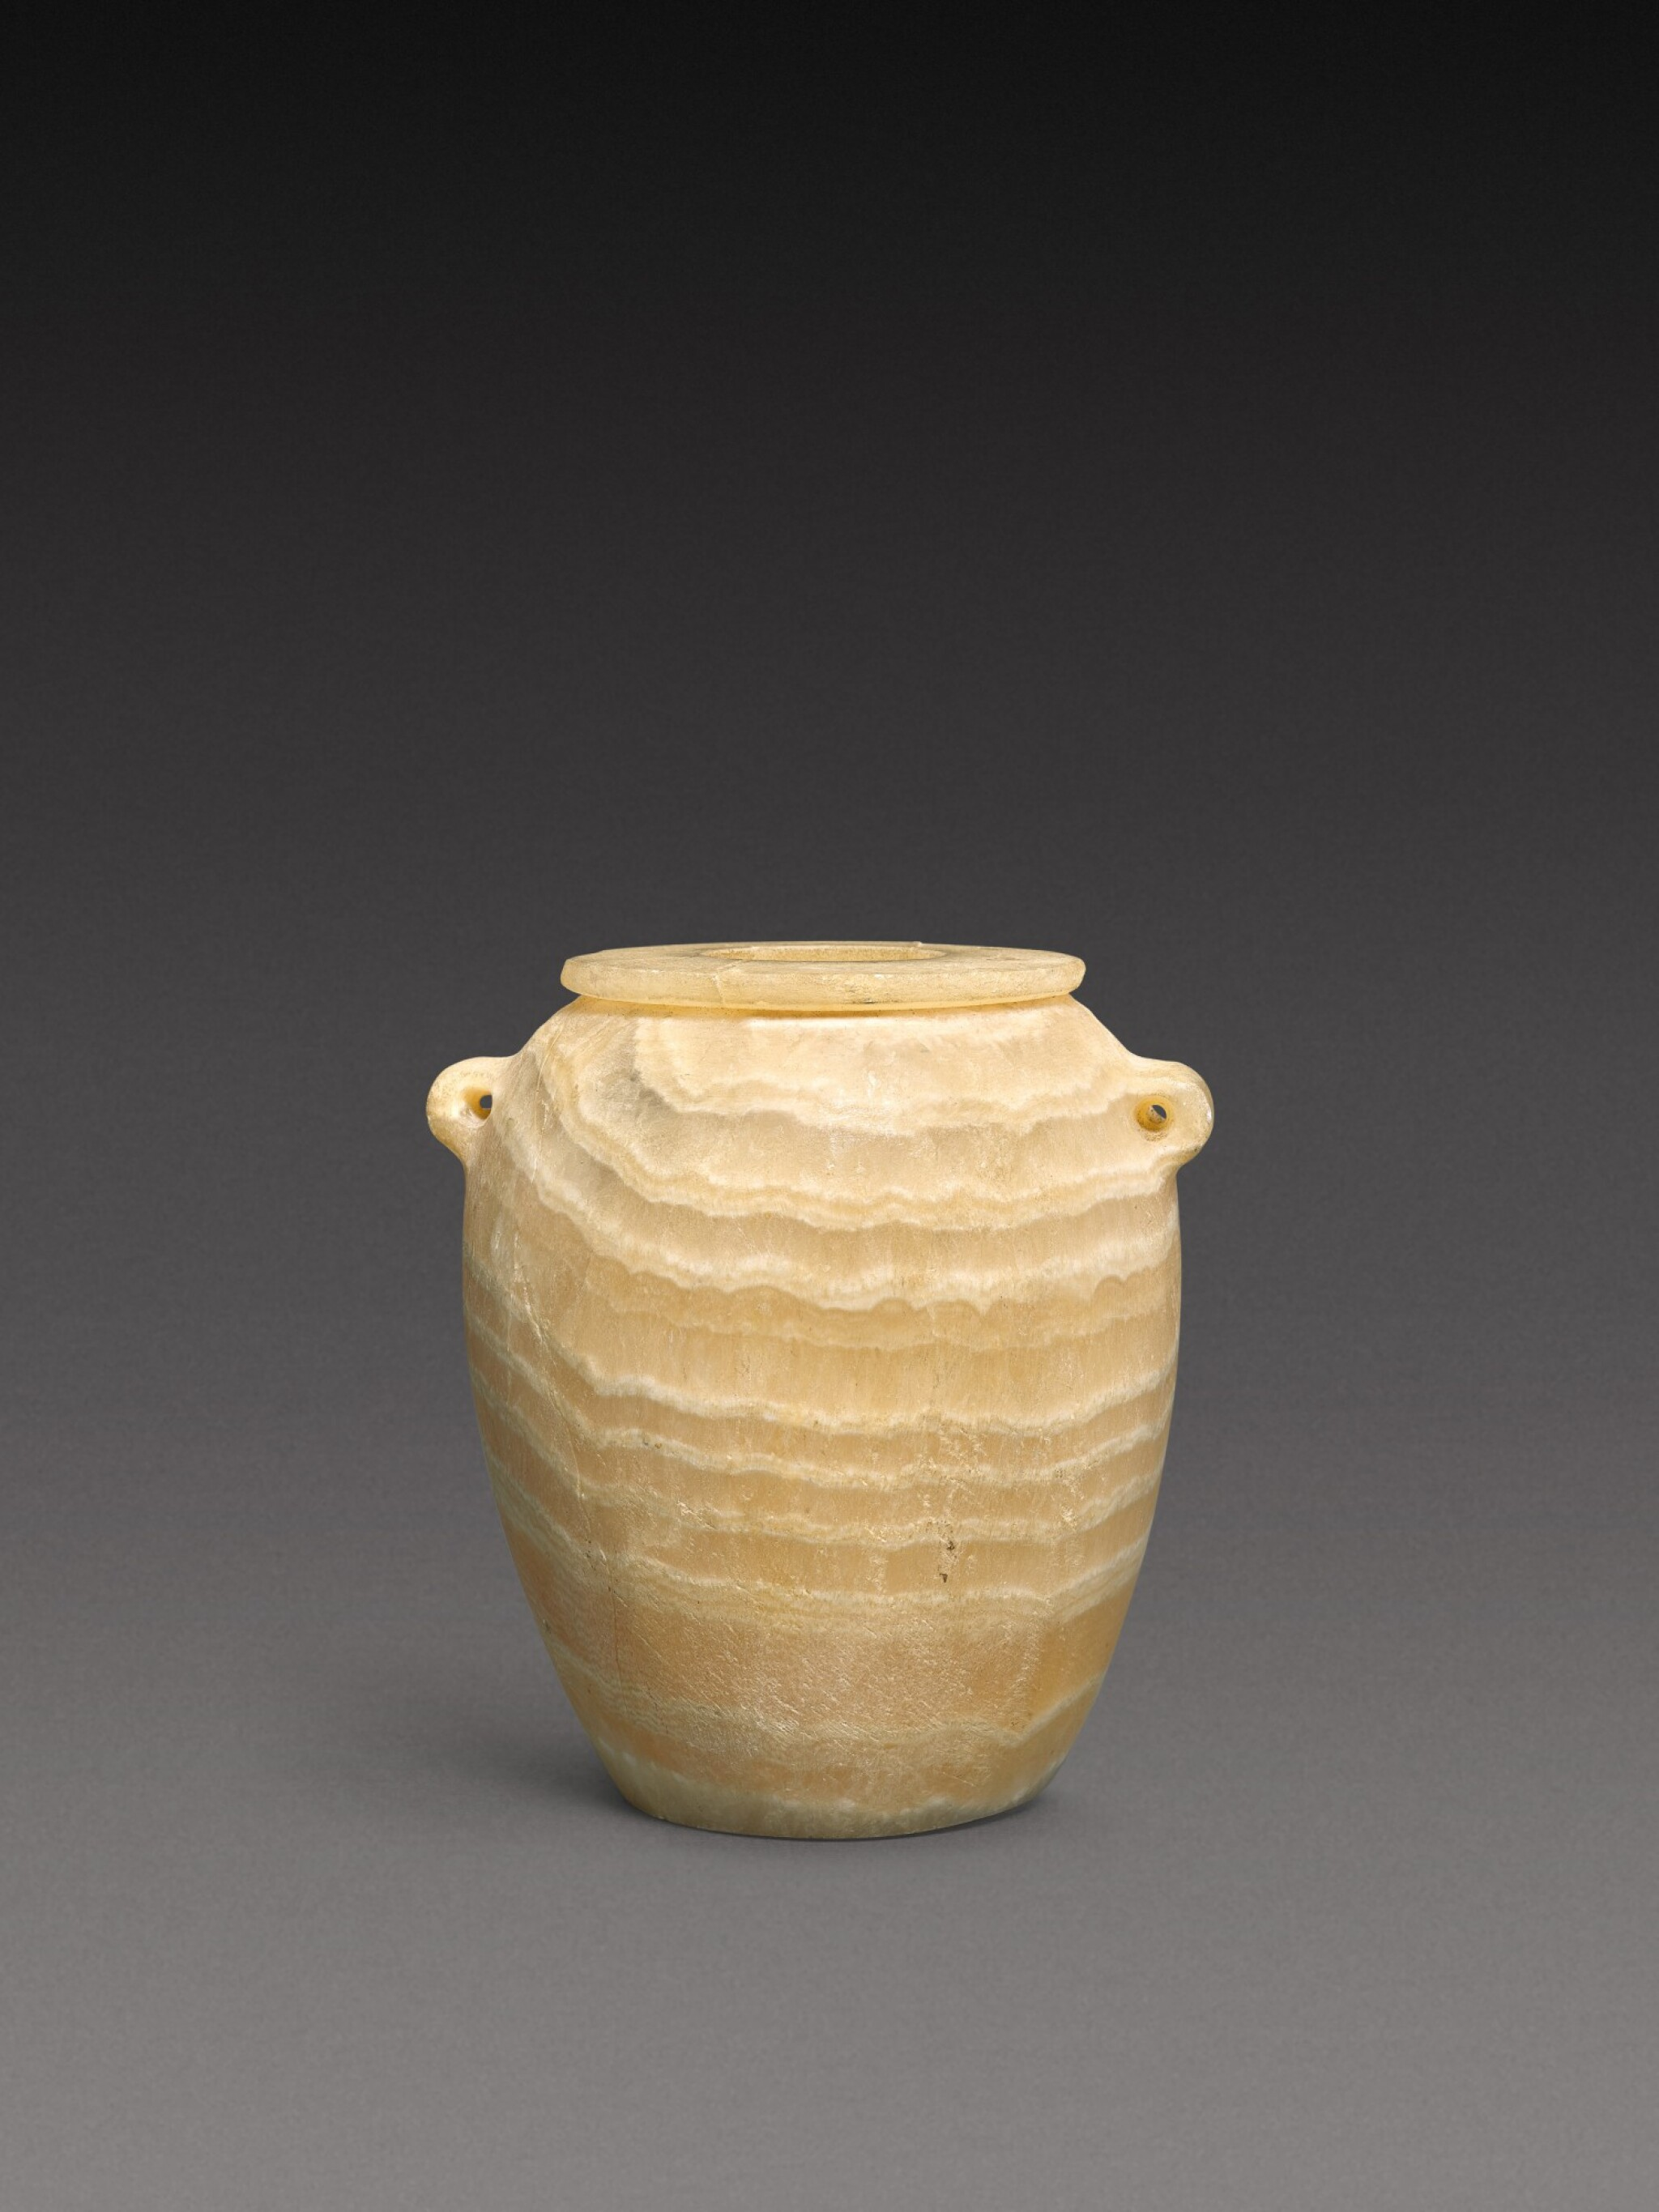 View 1 of Lot 51. An Egyptian Alabaster Jar, Predynastic Period (Nagada II)/1st Dynasty, circa 3500-2900 B.C..